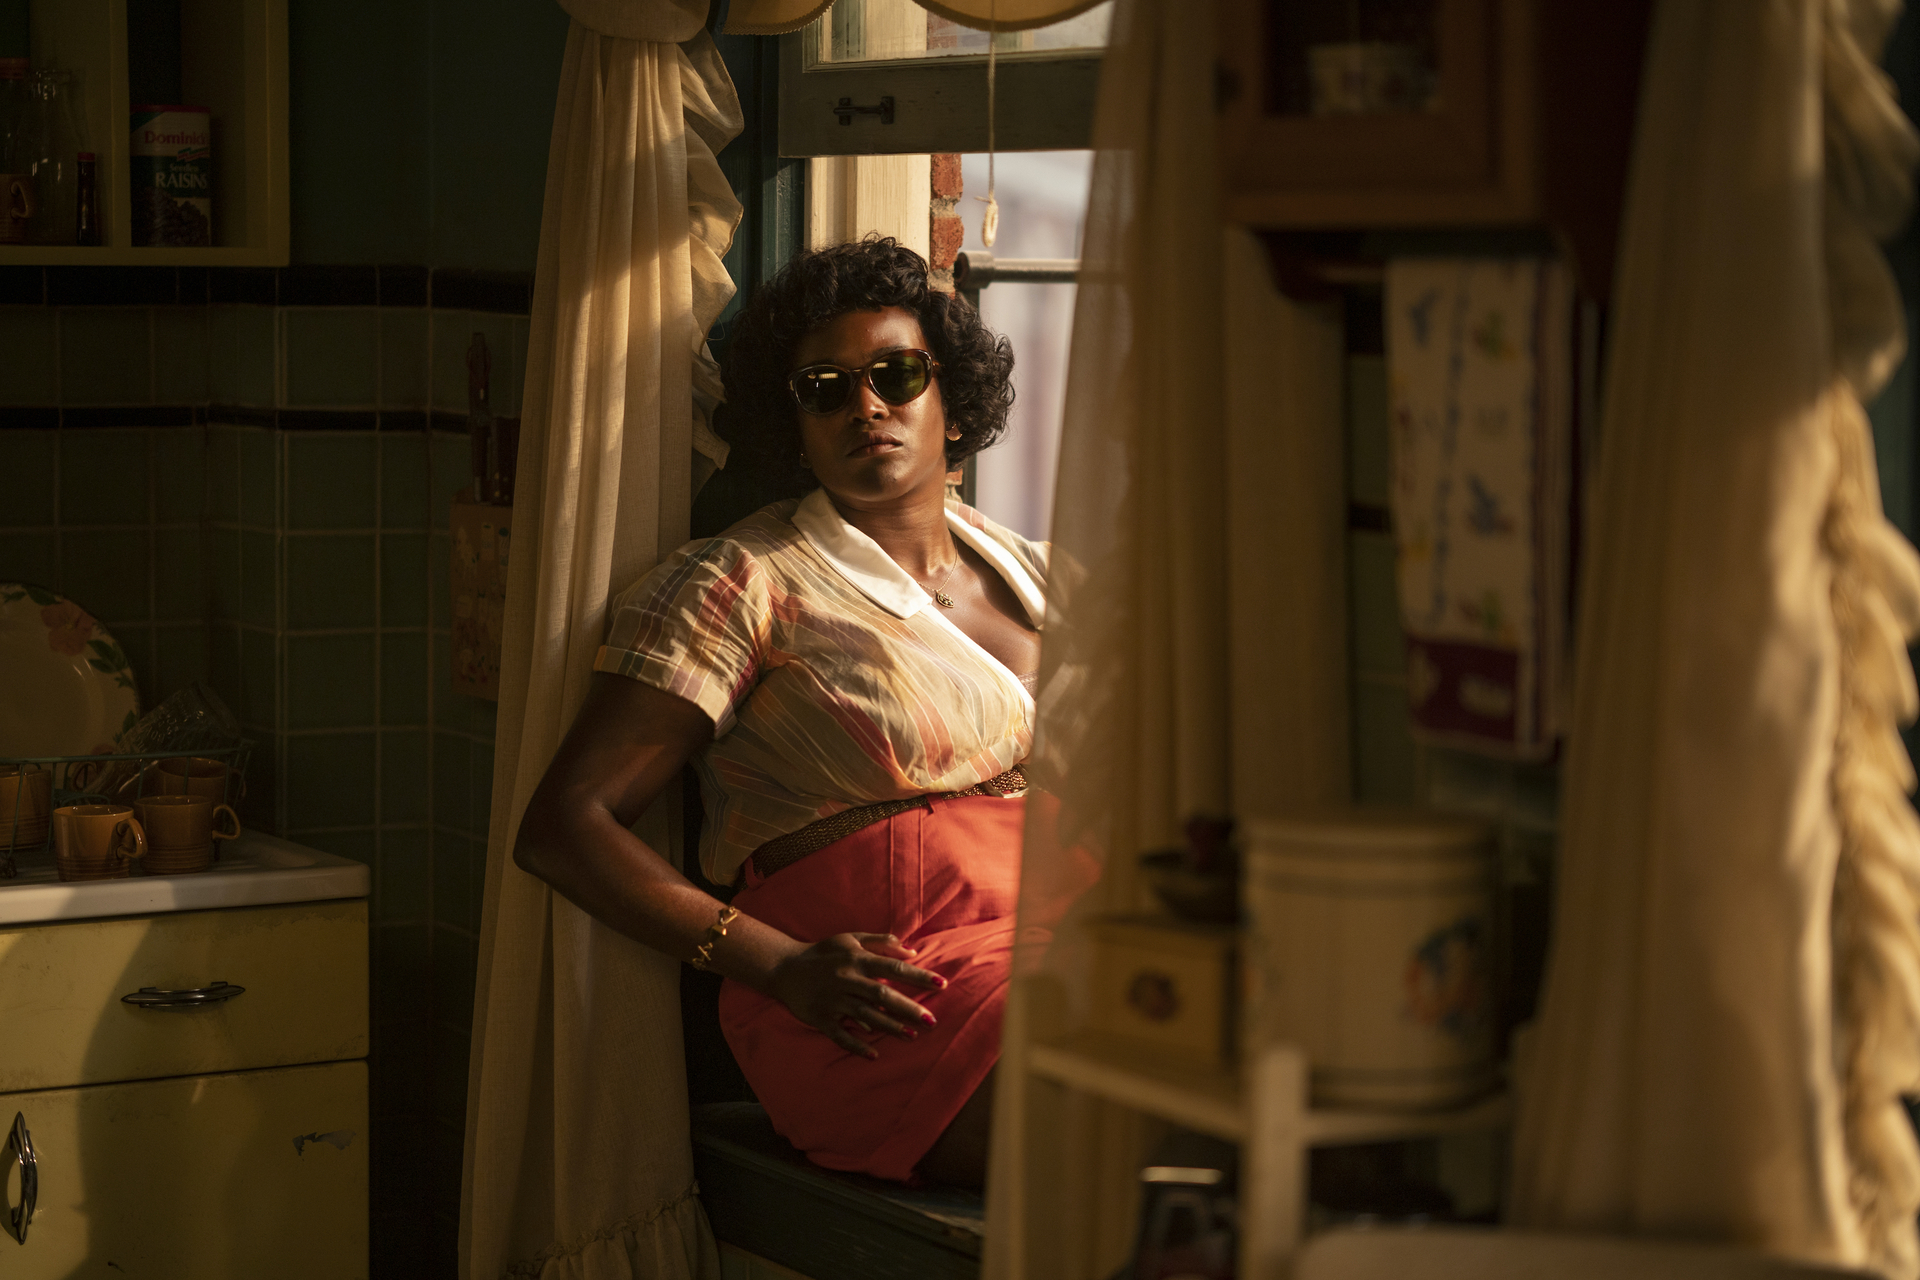 A Black woman sits on a windowsill in a kitchen wearing sunglasses.